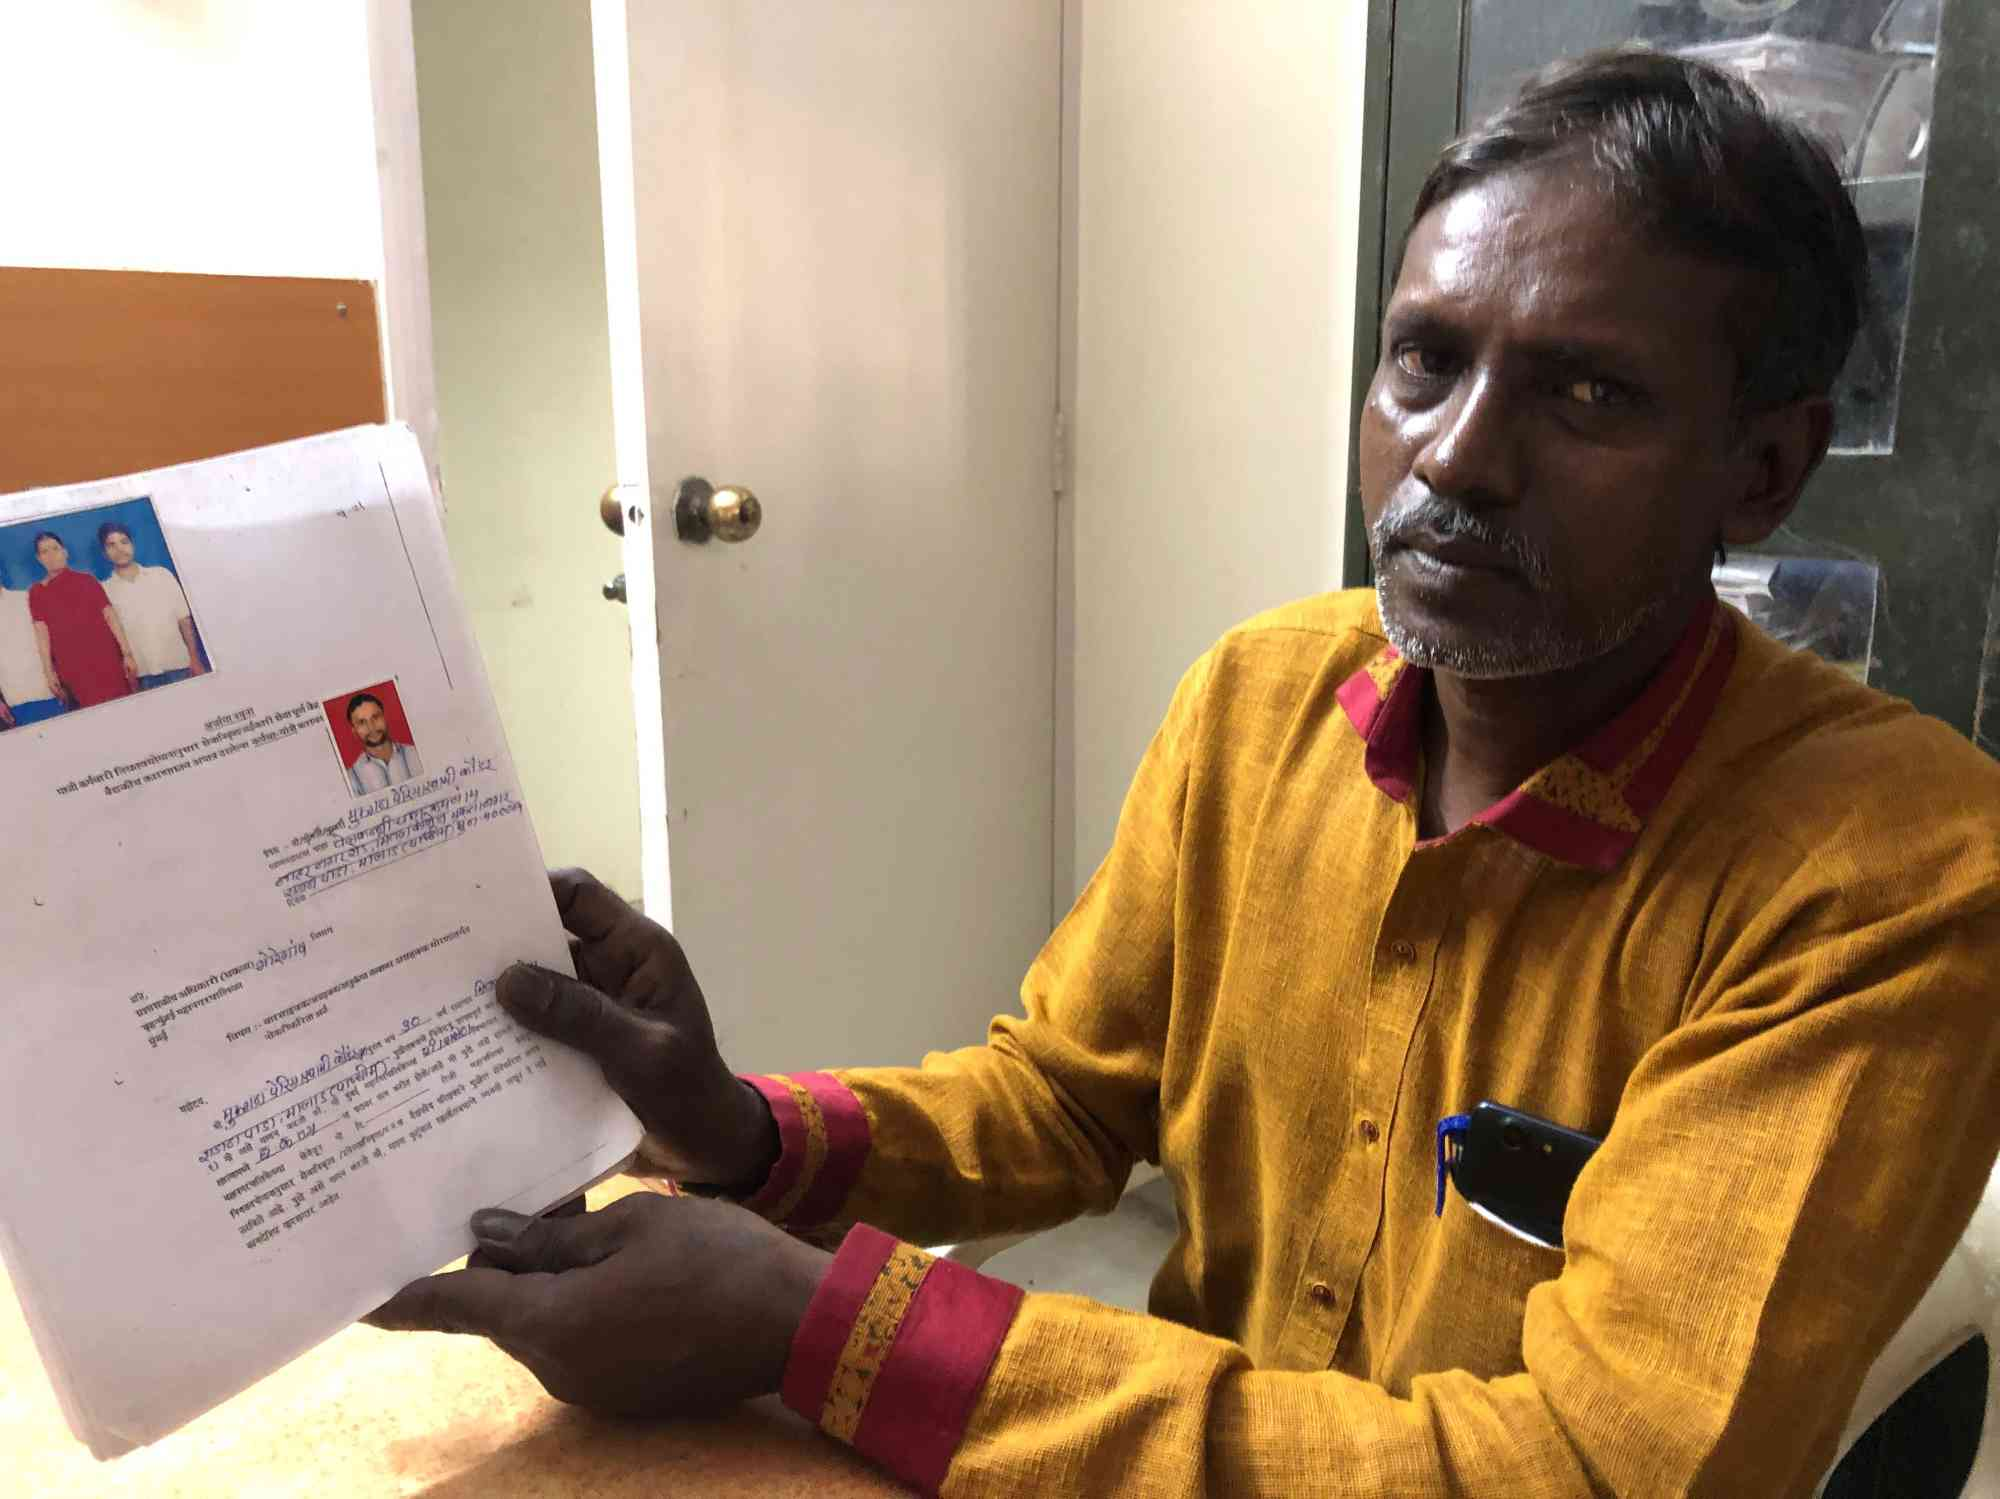 Sanitation worker Ravi Kannan Udayar at the Kachra Vahtuk Shramik Sangh union office in December. (Photo credit: Sujatha Fernandes).